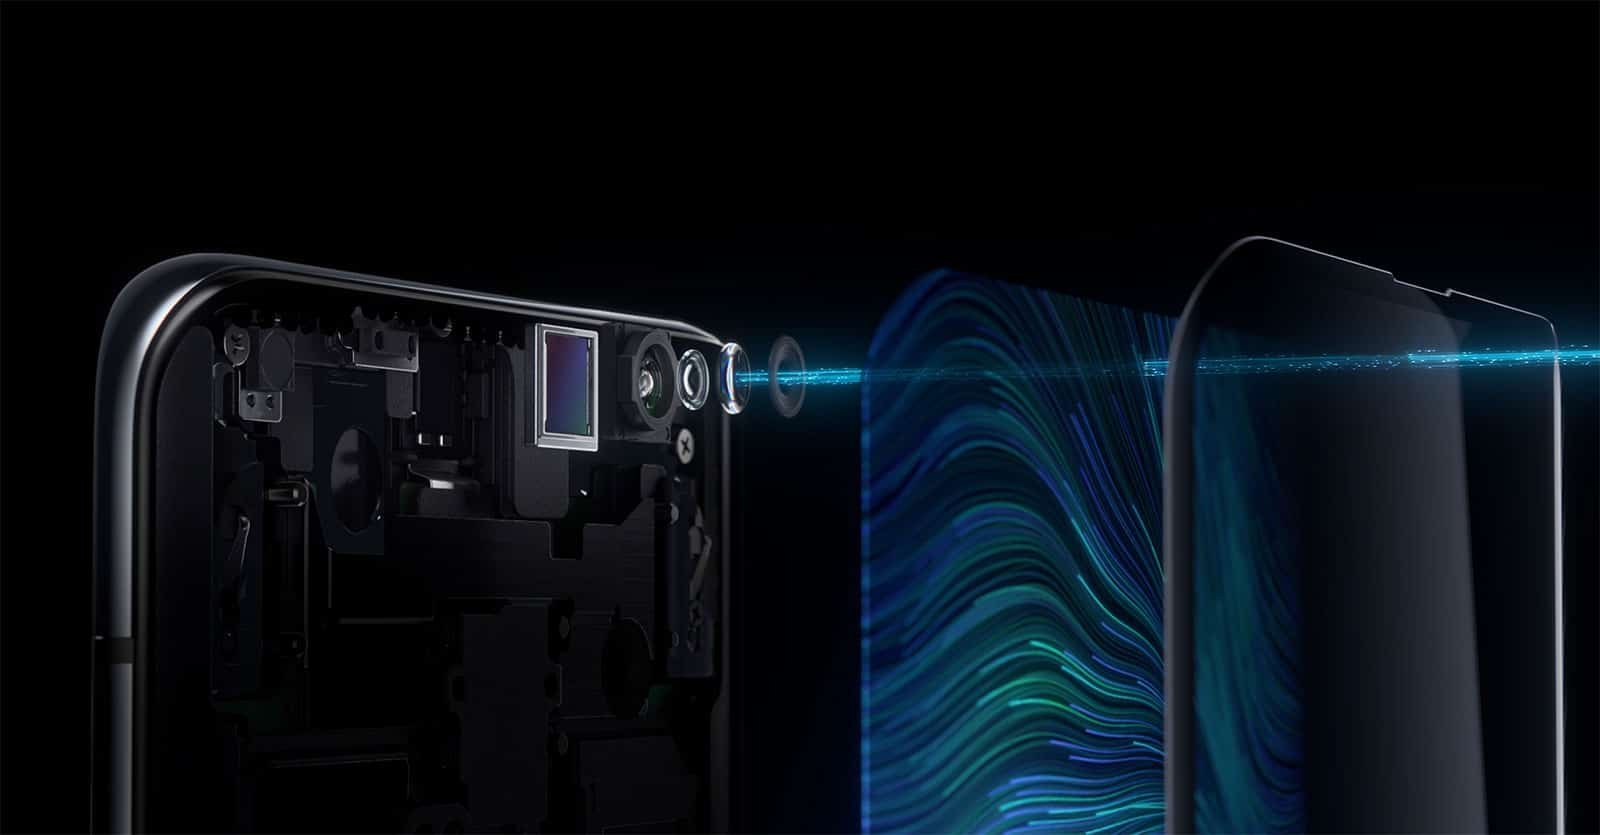 World's First Underscreen Camera Smartphone By OPPO